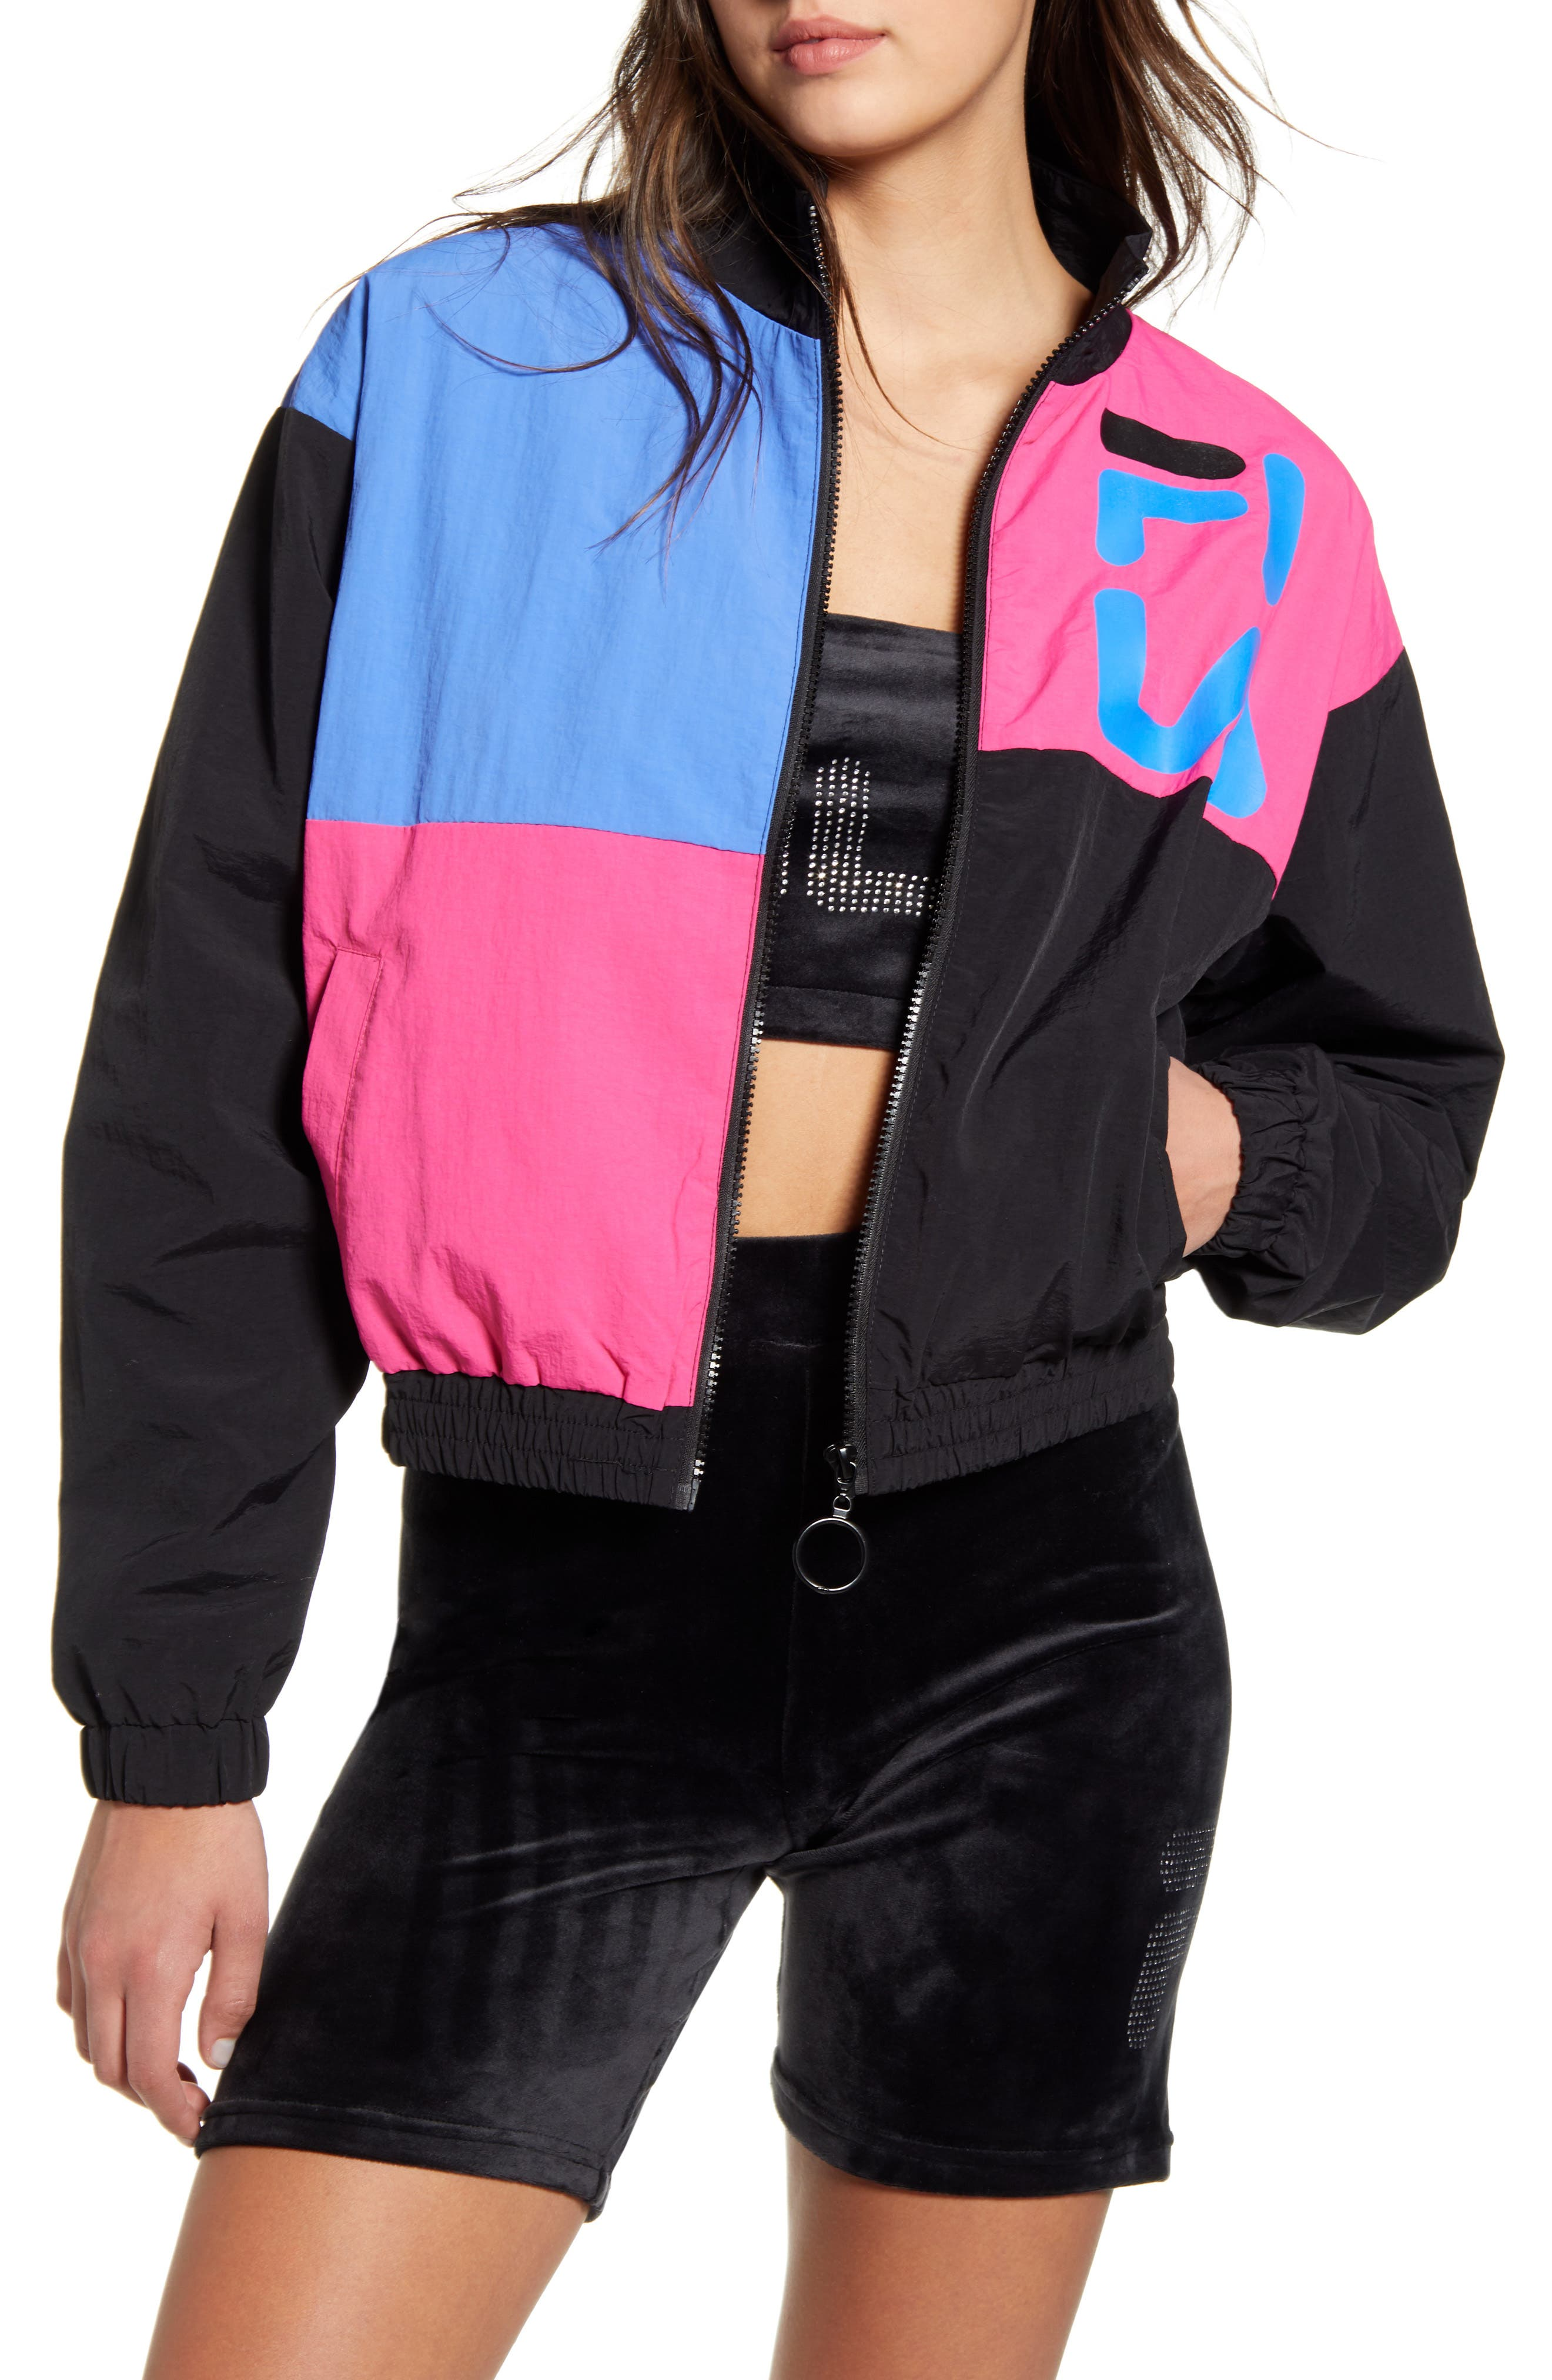 80s Windbreakers, Jackets, Coats Womens Fila Rumi Colorblock Nylon Windbreaker $32.00 AT vintagedancer.com